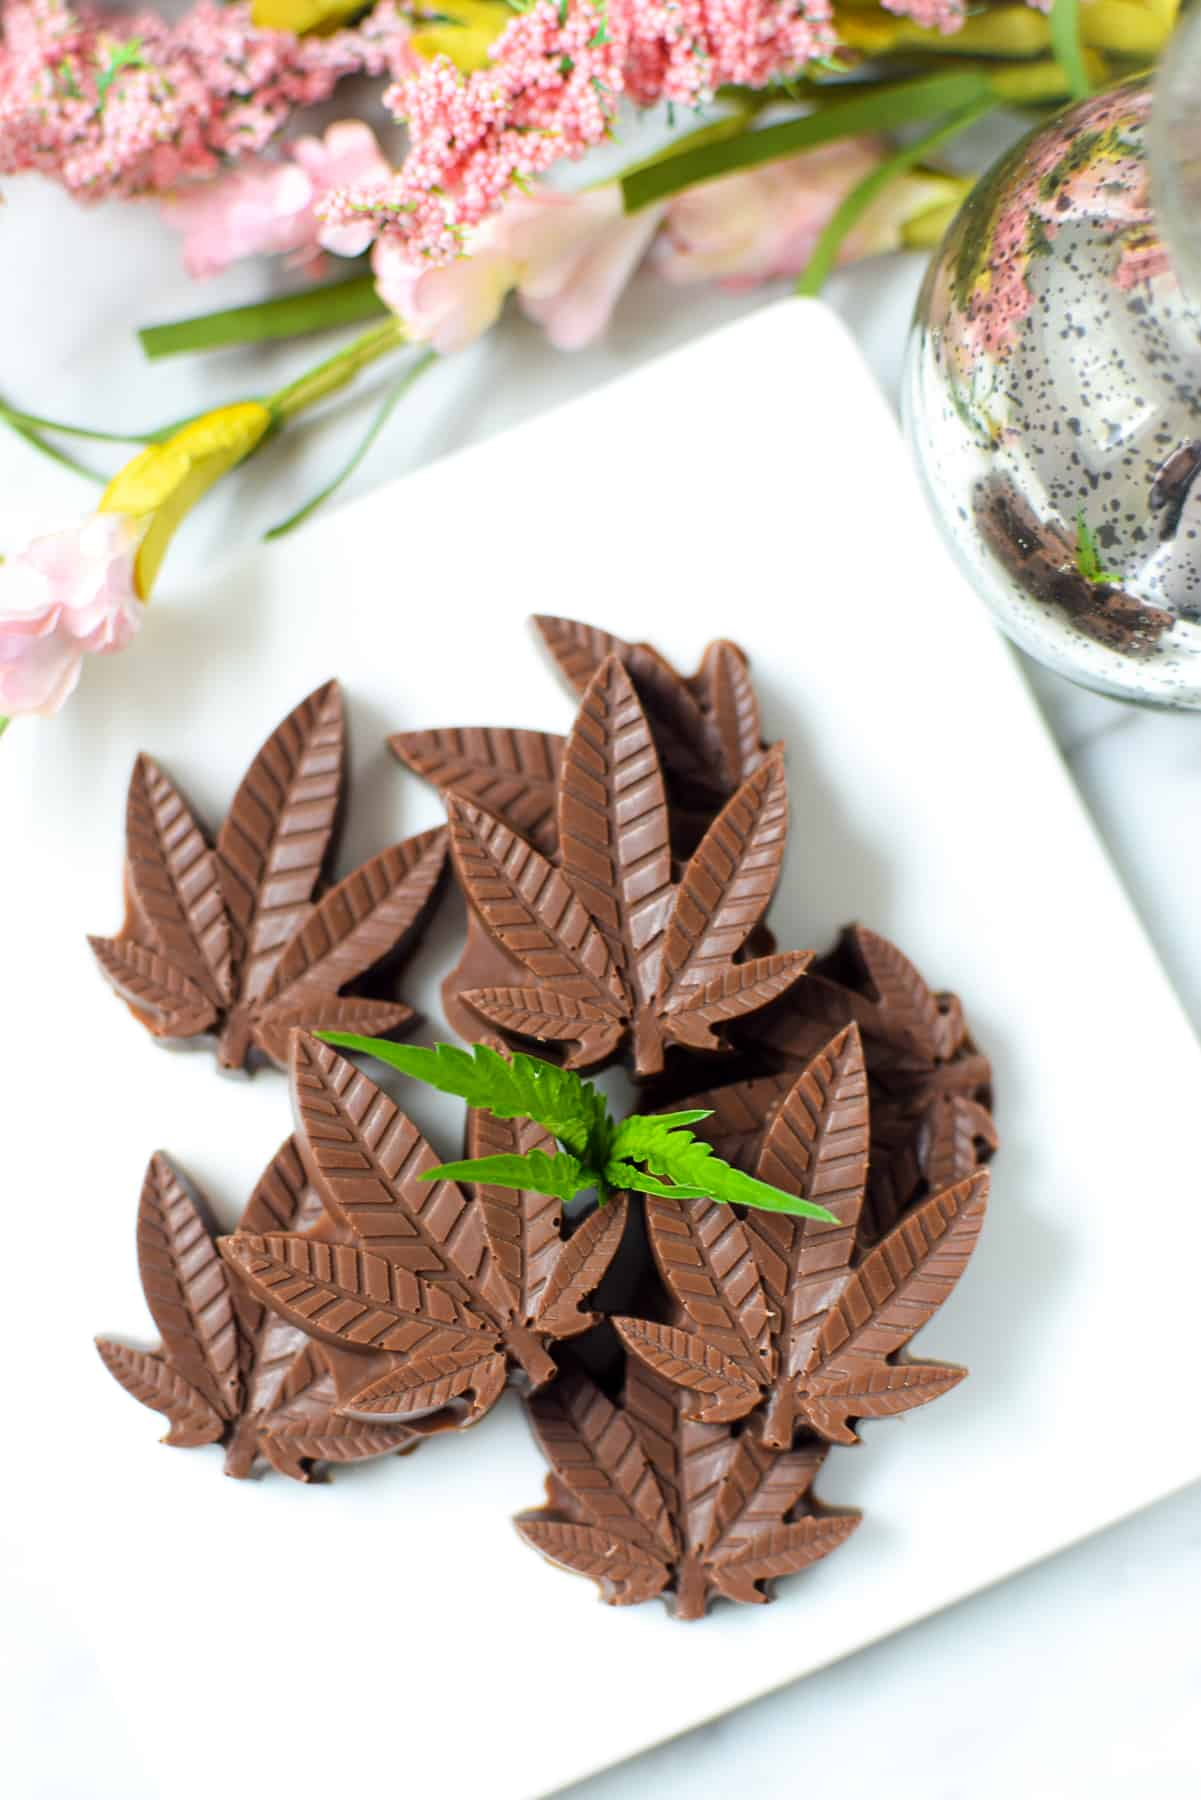 A completed batch of molded cannabis chocolates made in cannabis leaf shaped molds